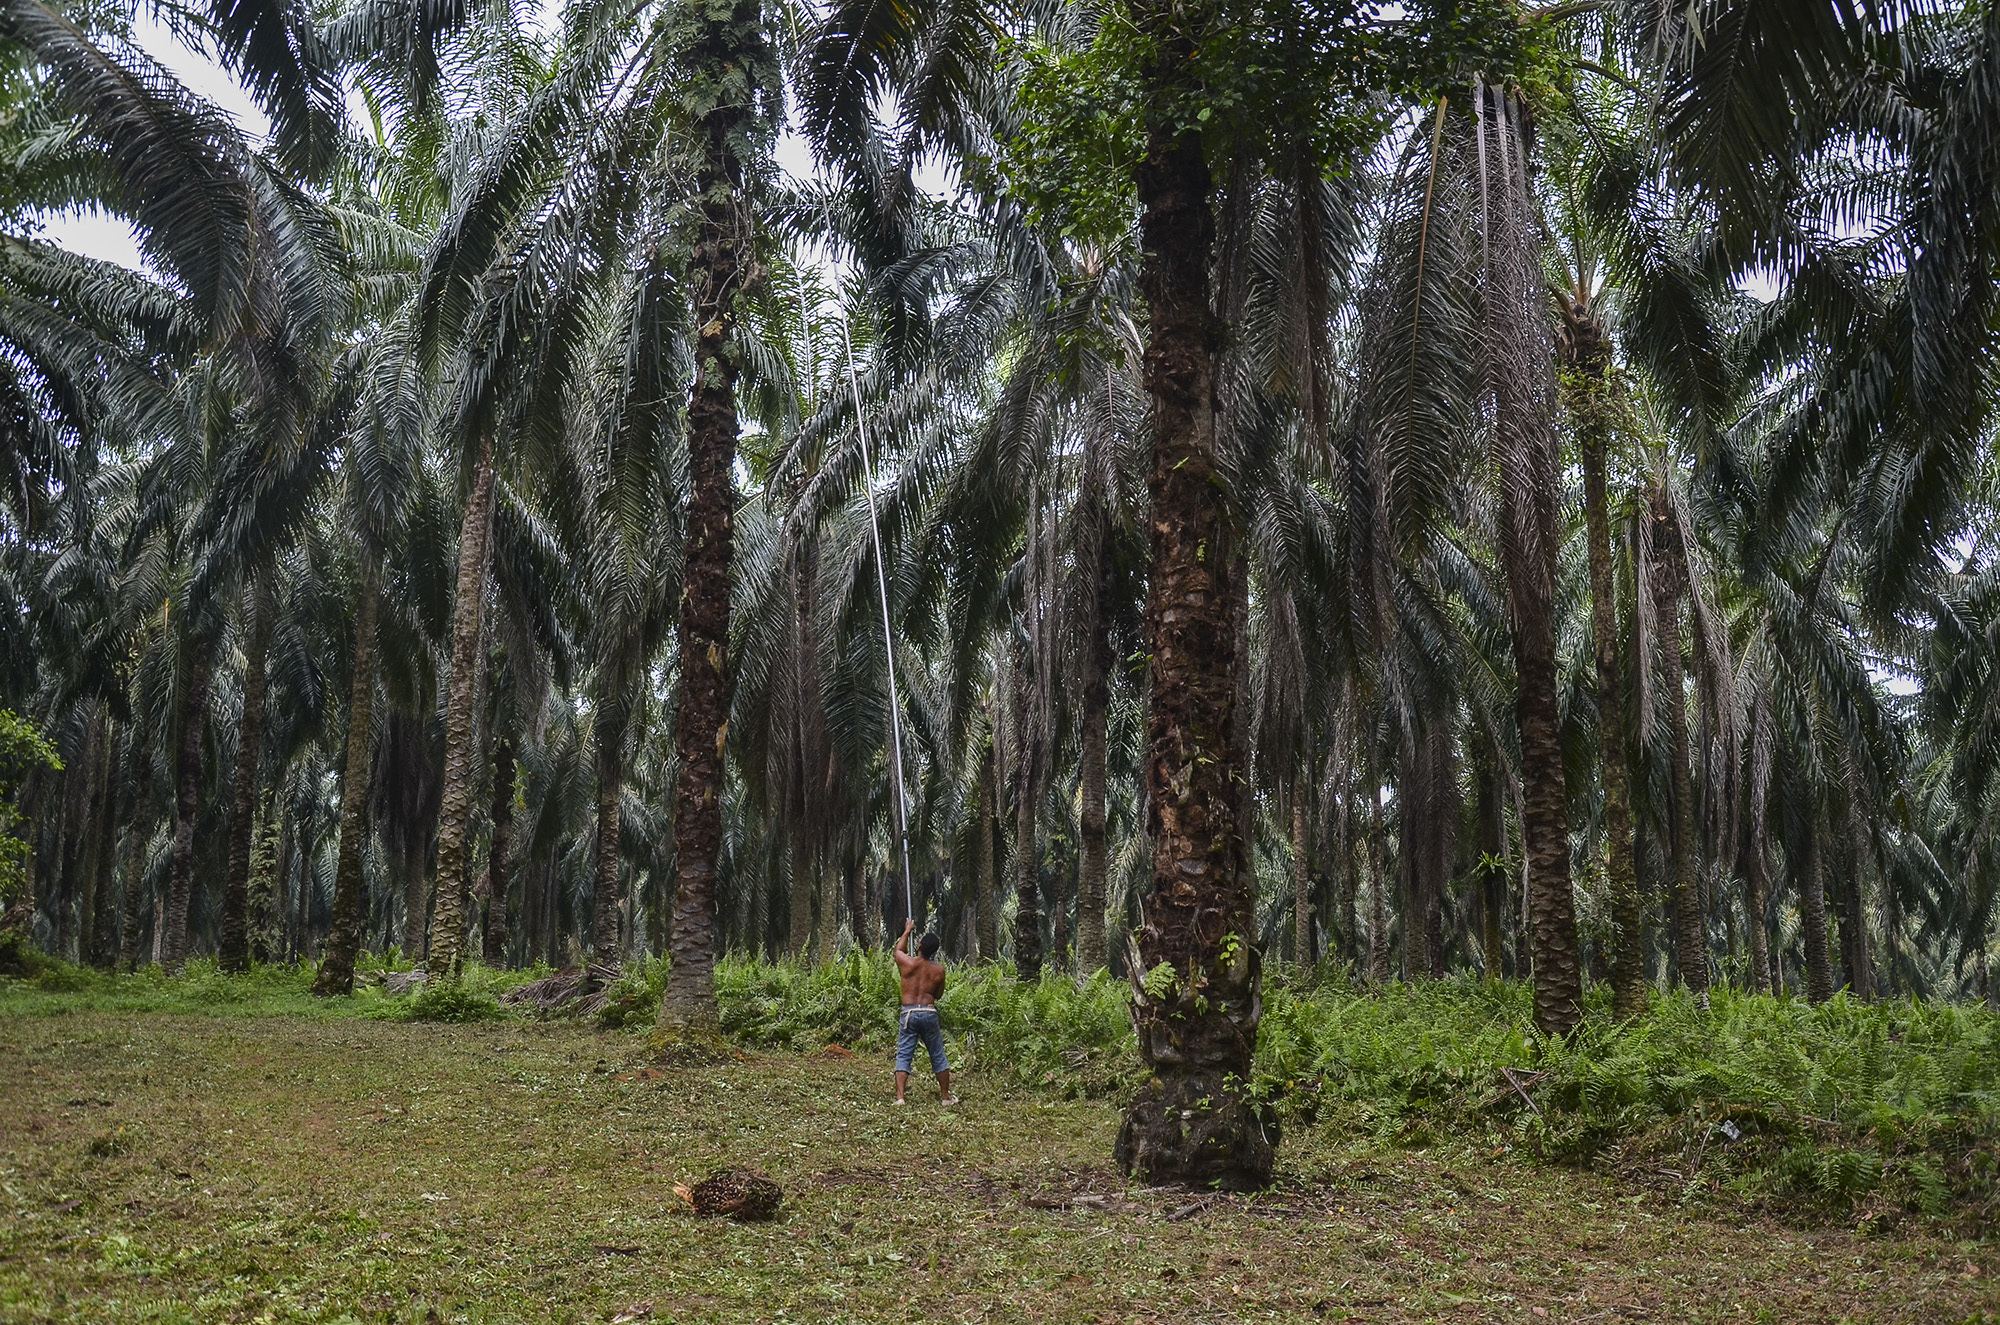 8.4 million people are employed in Indonesia's palm oil industry